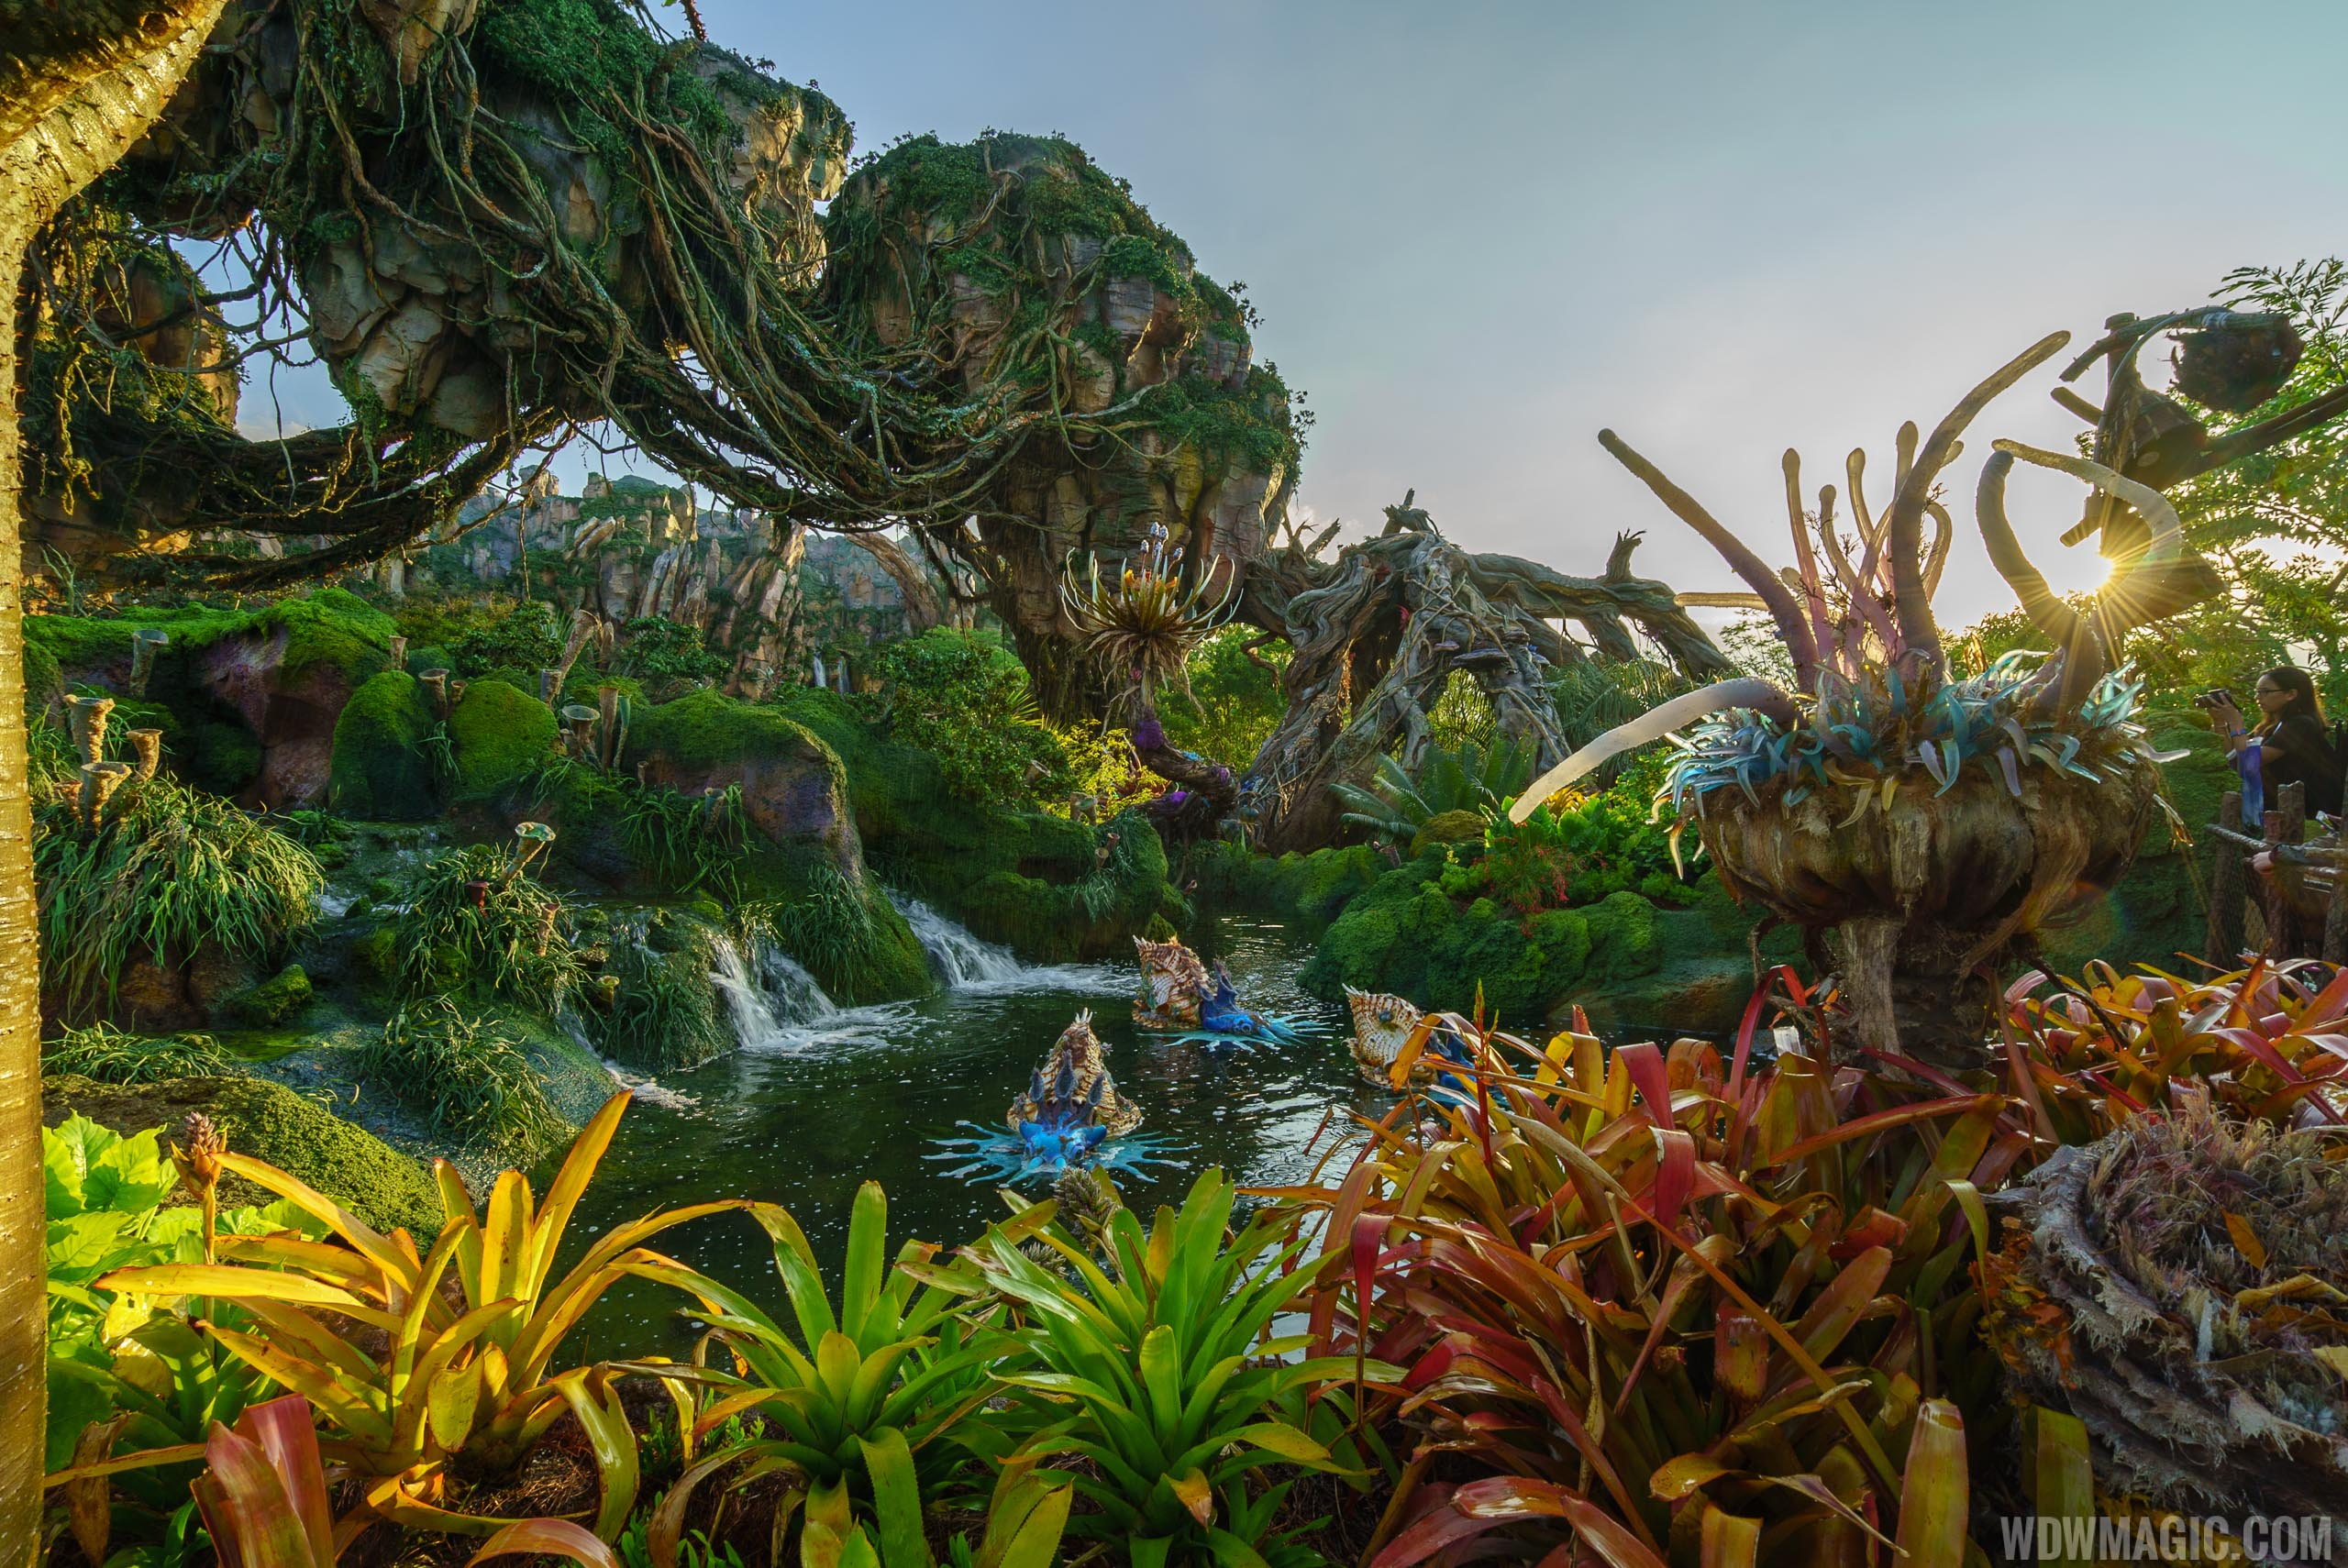 Disney's Animal Kingdom will be open for 12 hours